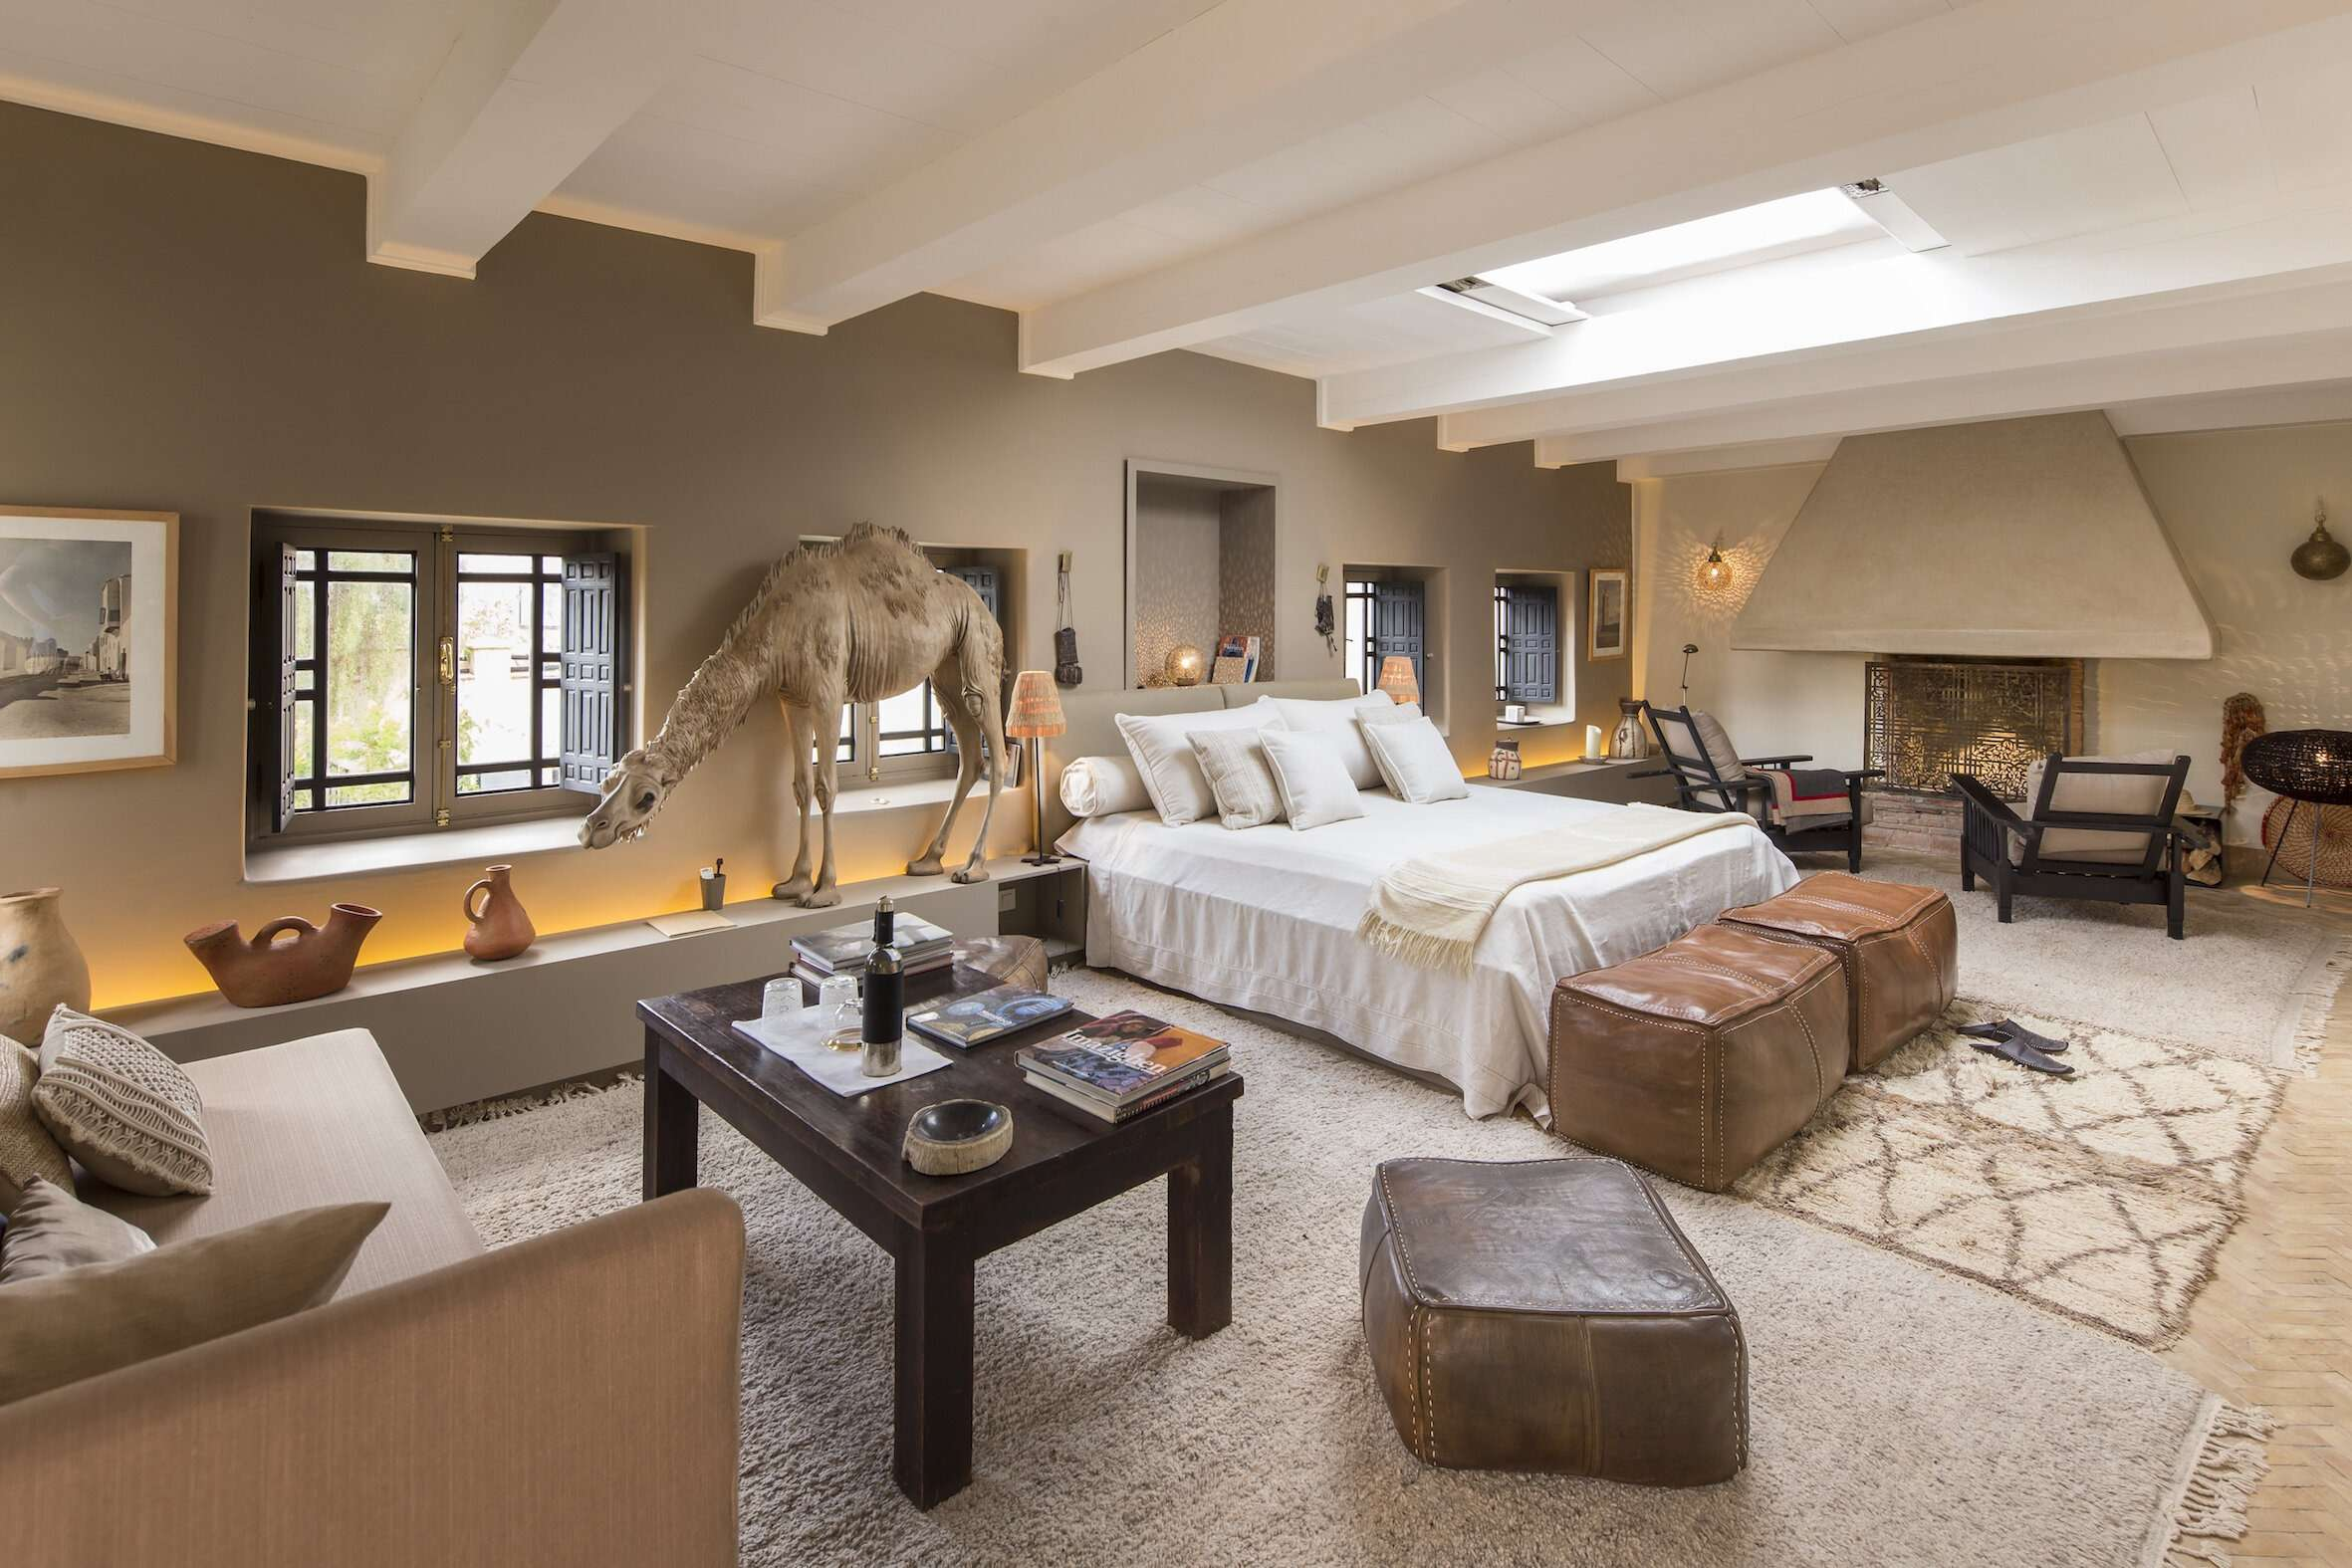 bedroom suite at Dar el Sadaka in Marrakech, with large camel figure by the window